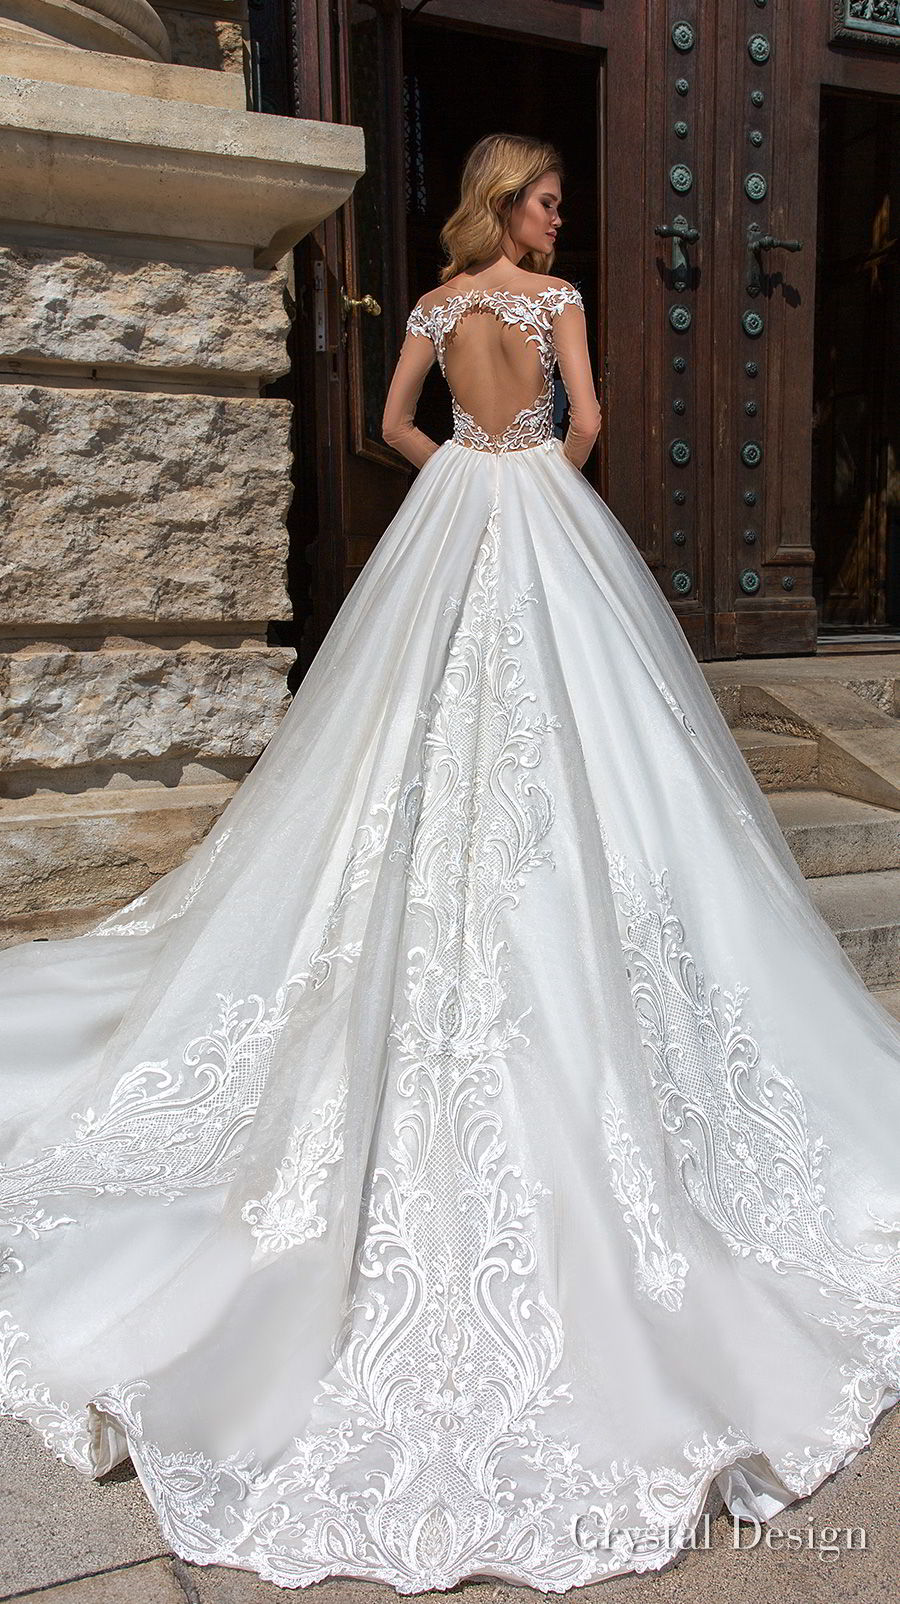 crystal design 2018 long sheer sleeves sweetheart neckline full embellishment princess a  line wedding dress keyhole back chapel train (gabriella) bv